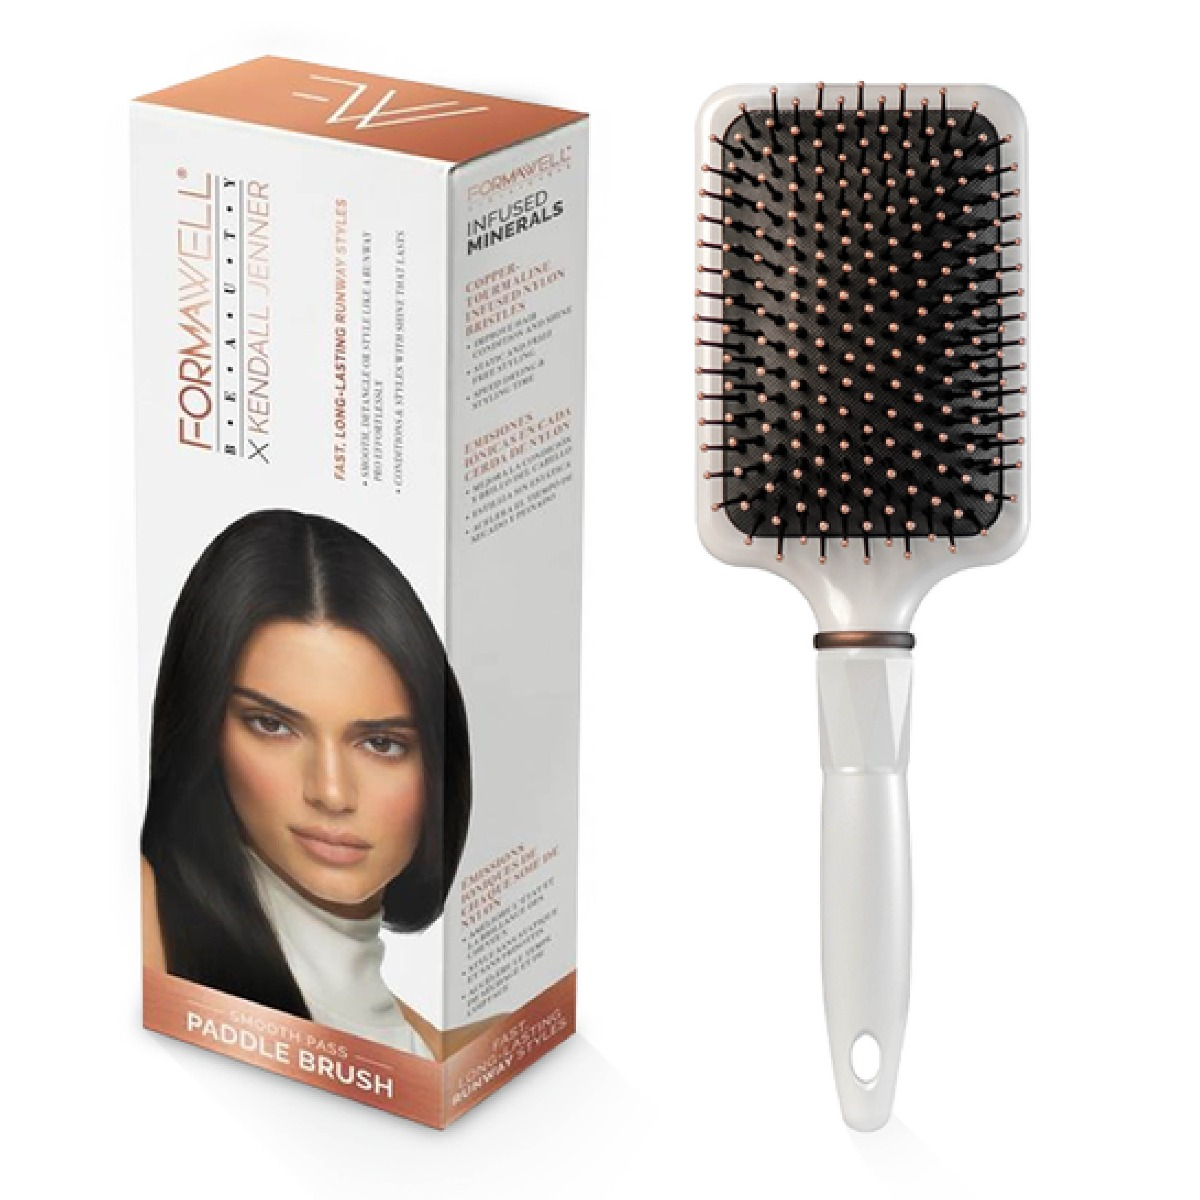 An image of Formawell Beauty X Kendall Jenner Smooth Pass Paddle Brush